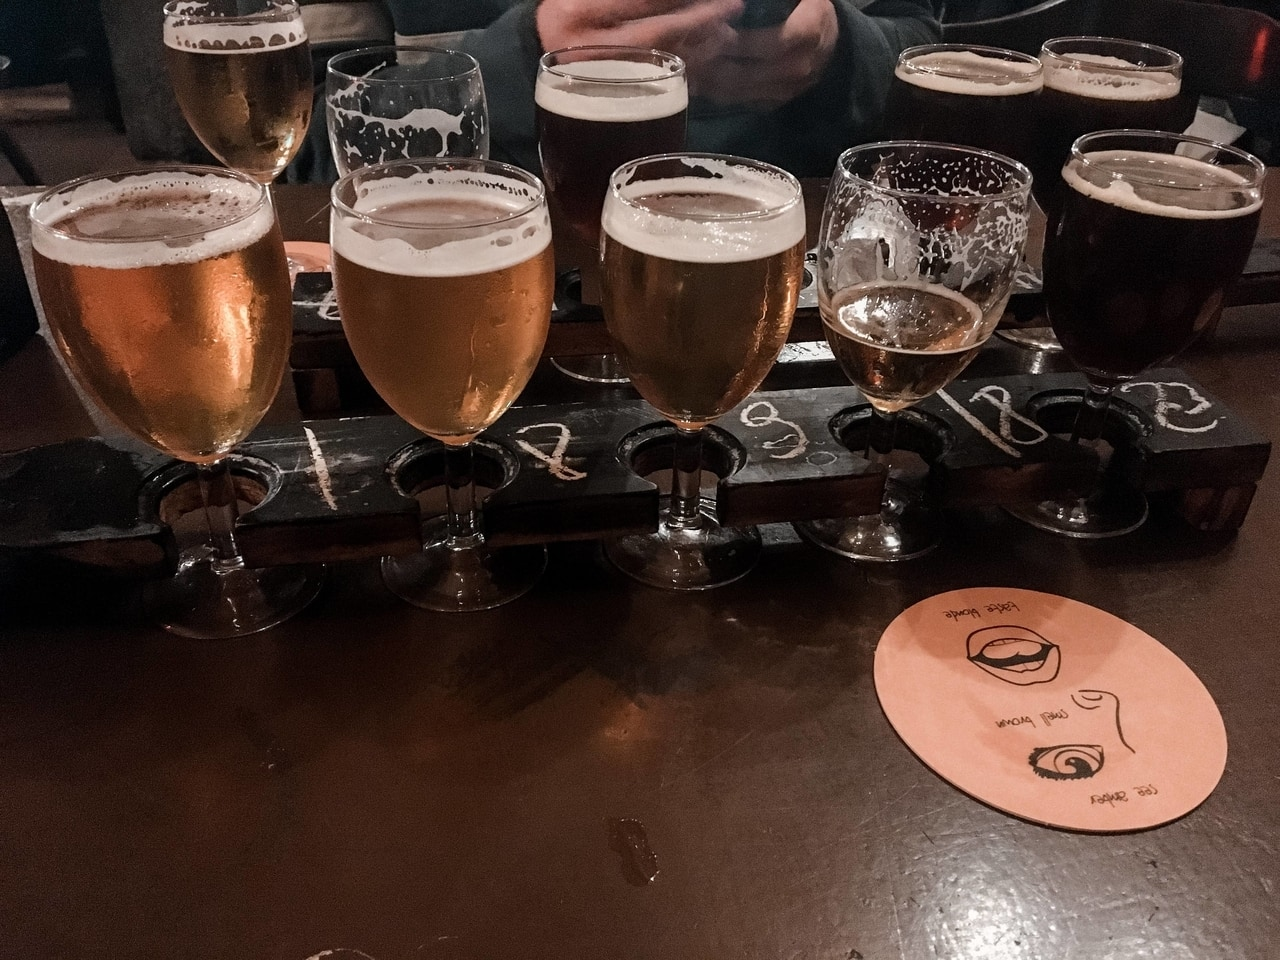 Tasting Paddle of Belgian beers at Le Trappiste